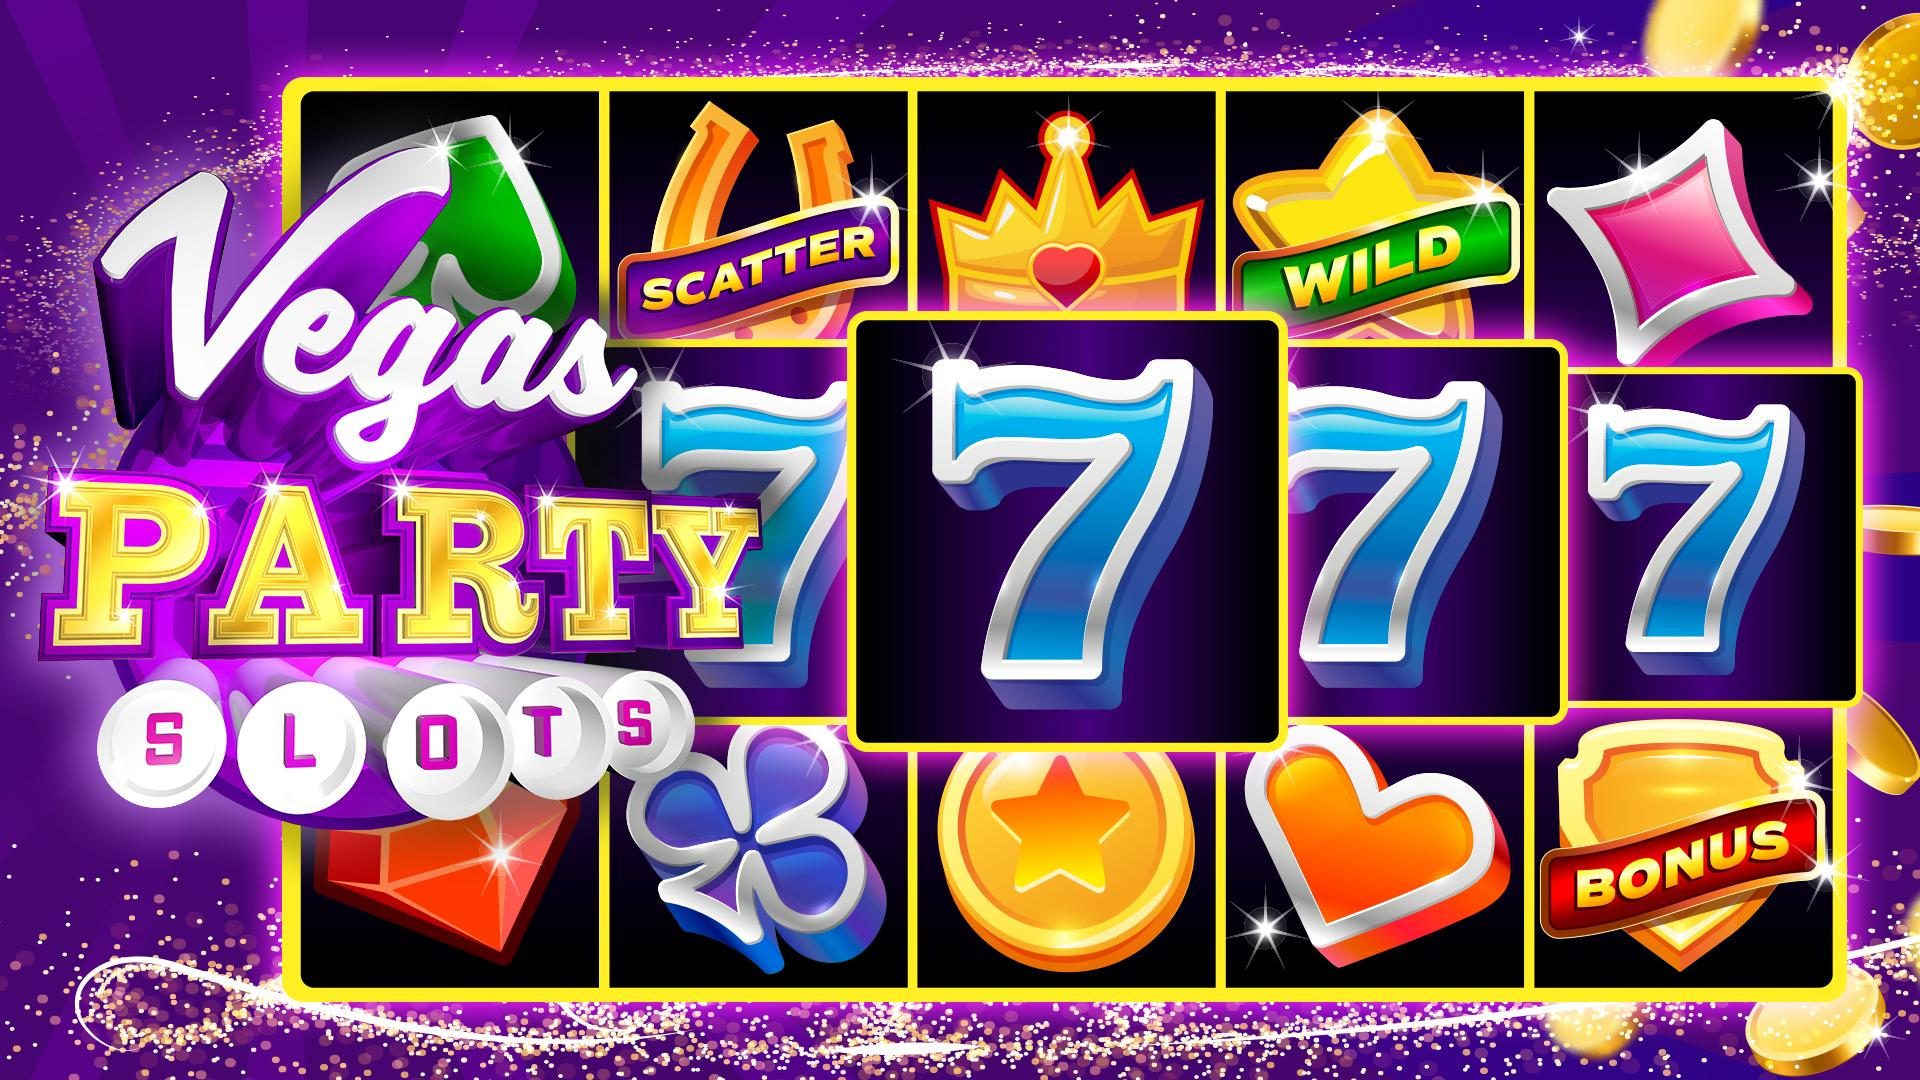 Vegas Party at the online casino